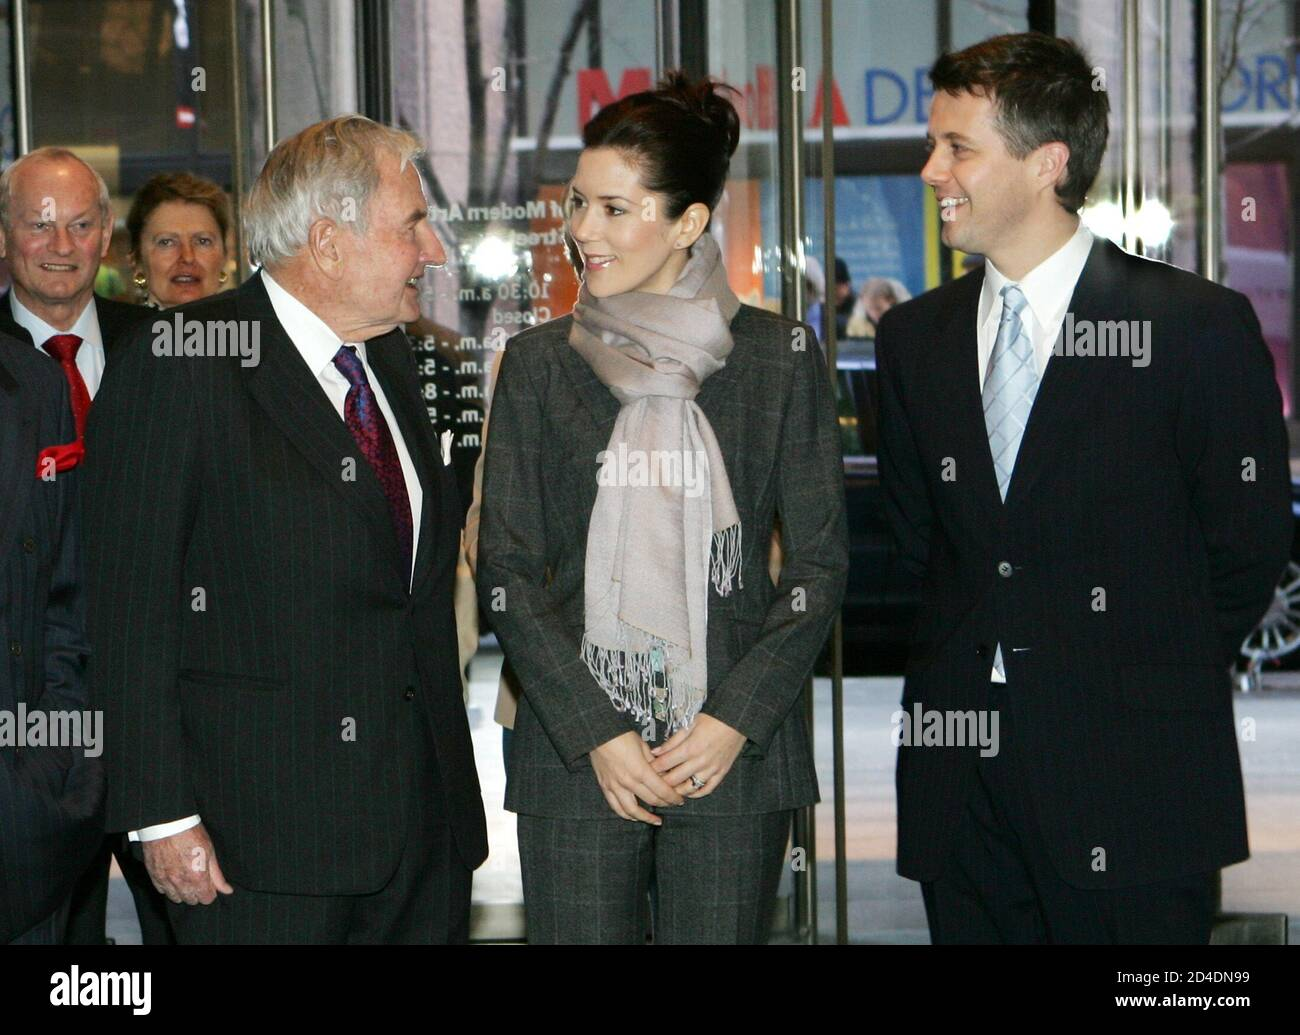 Denmark's Crown Prince Frederick (R) and his wife Crown Princess Mary are greeted by David Rockefeller, (L) the Chairman Emeritus New York's Museum of Modern Art as the Royal couple arrived at the Museum for a private tour, January 31, 2005. REUTERS/Mike Segar  MS Stock Photo